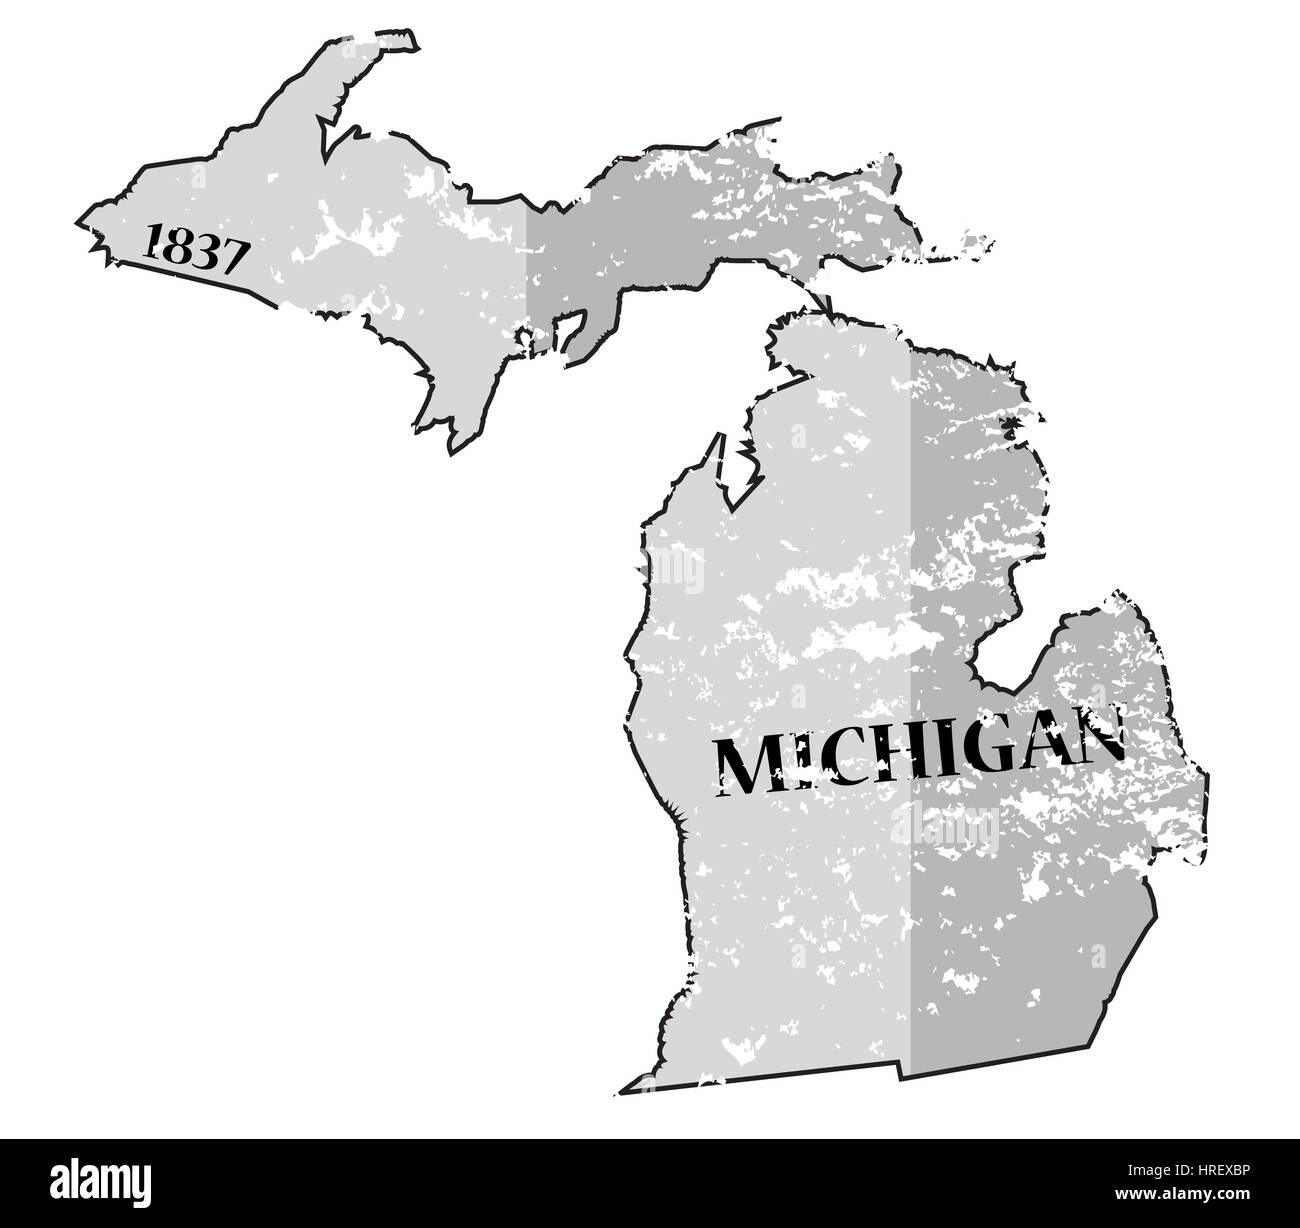 Michigan State Map Black And White Stock Photos Images Alamy